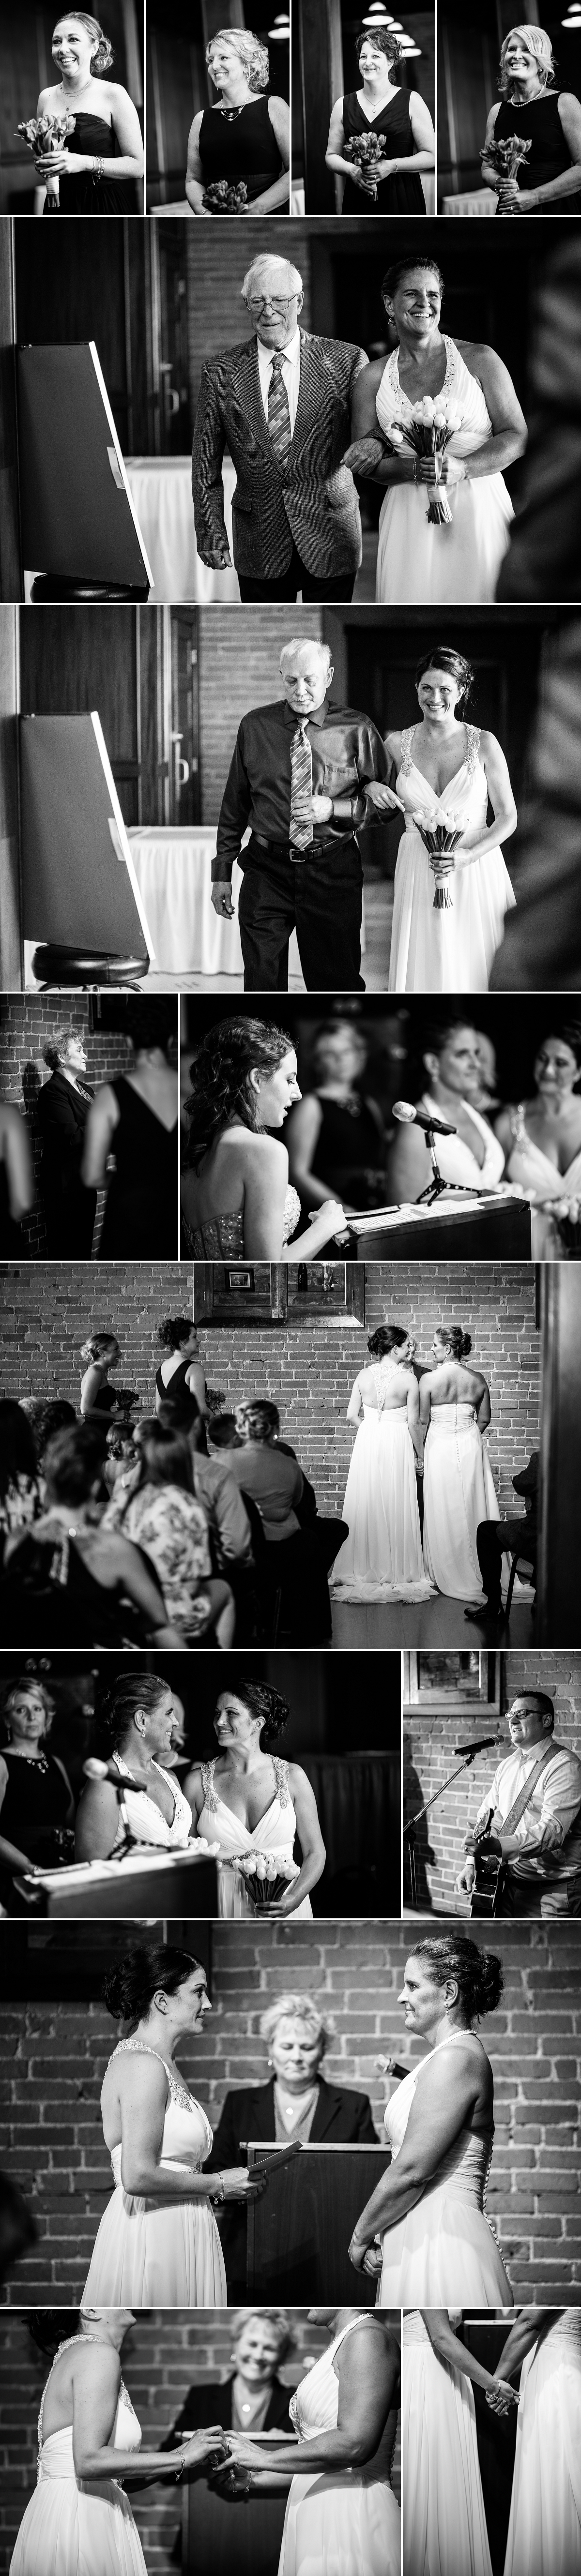 Beth and Gina Shakopee Wedding Photography 16